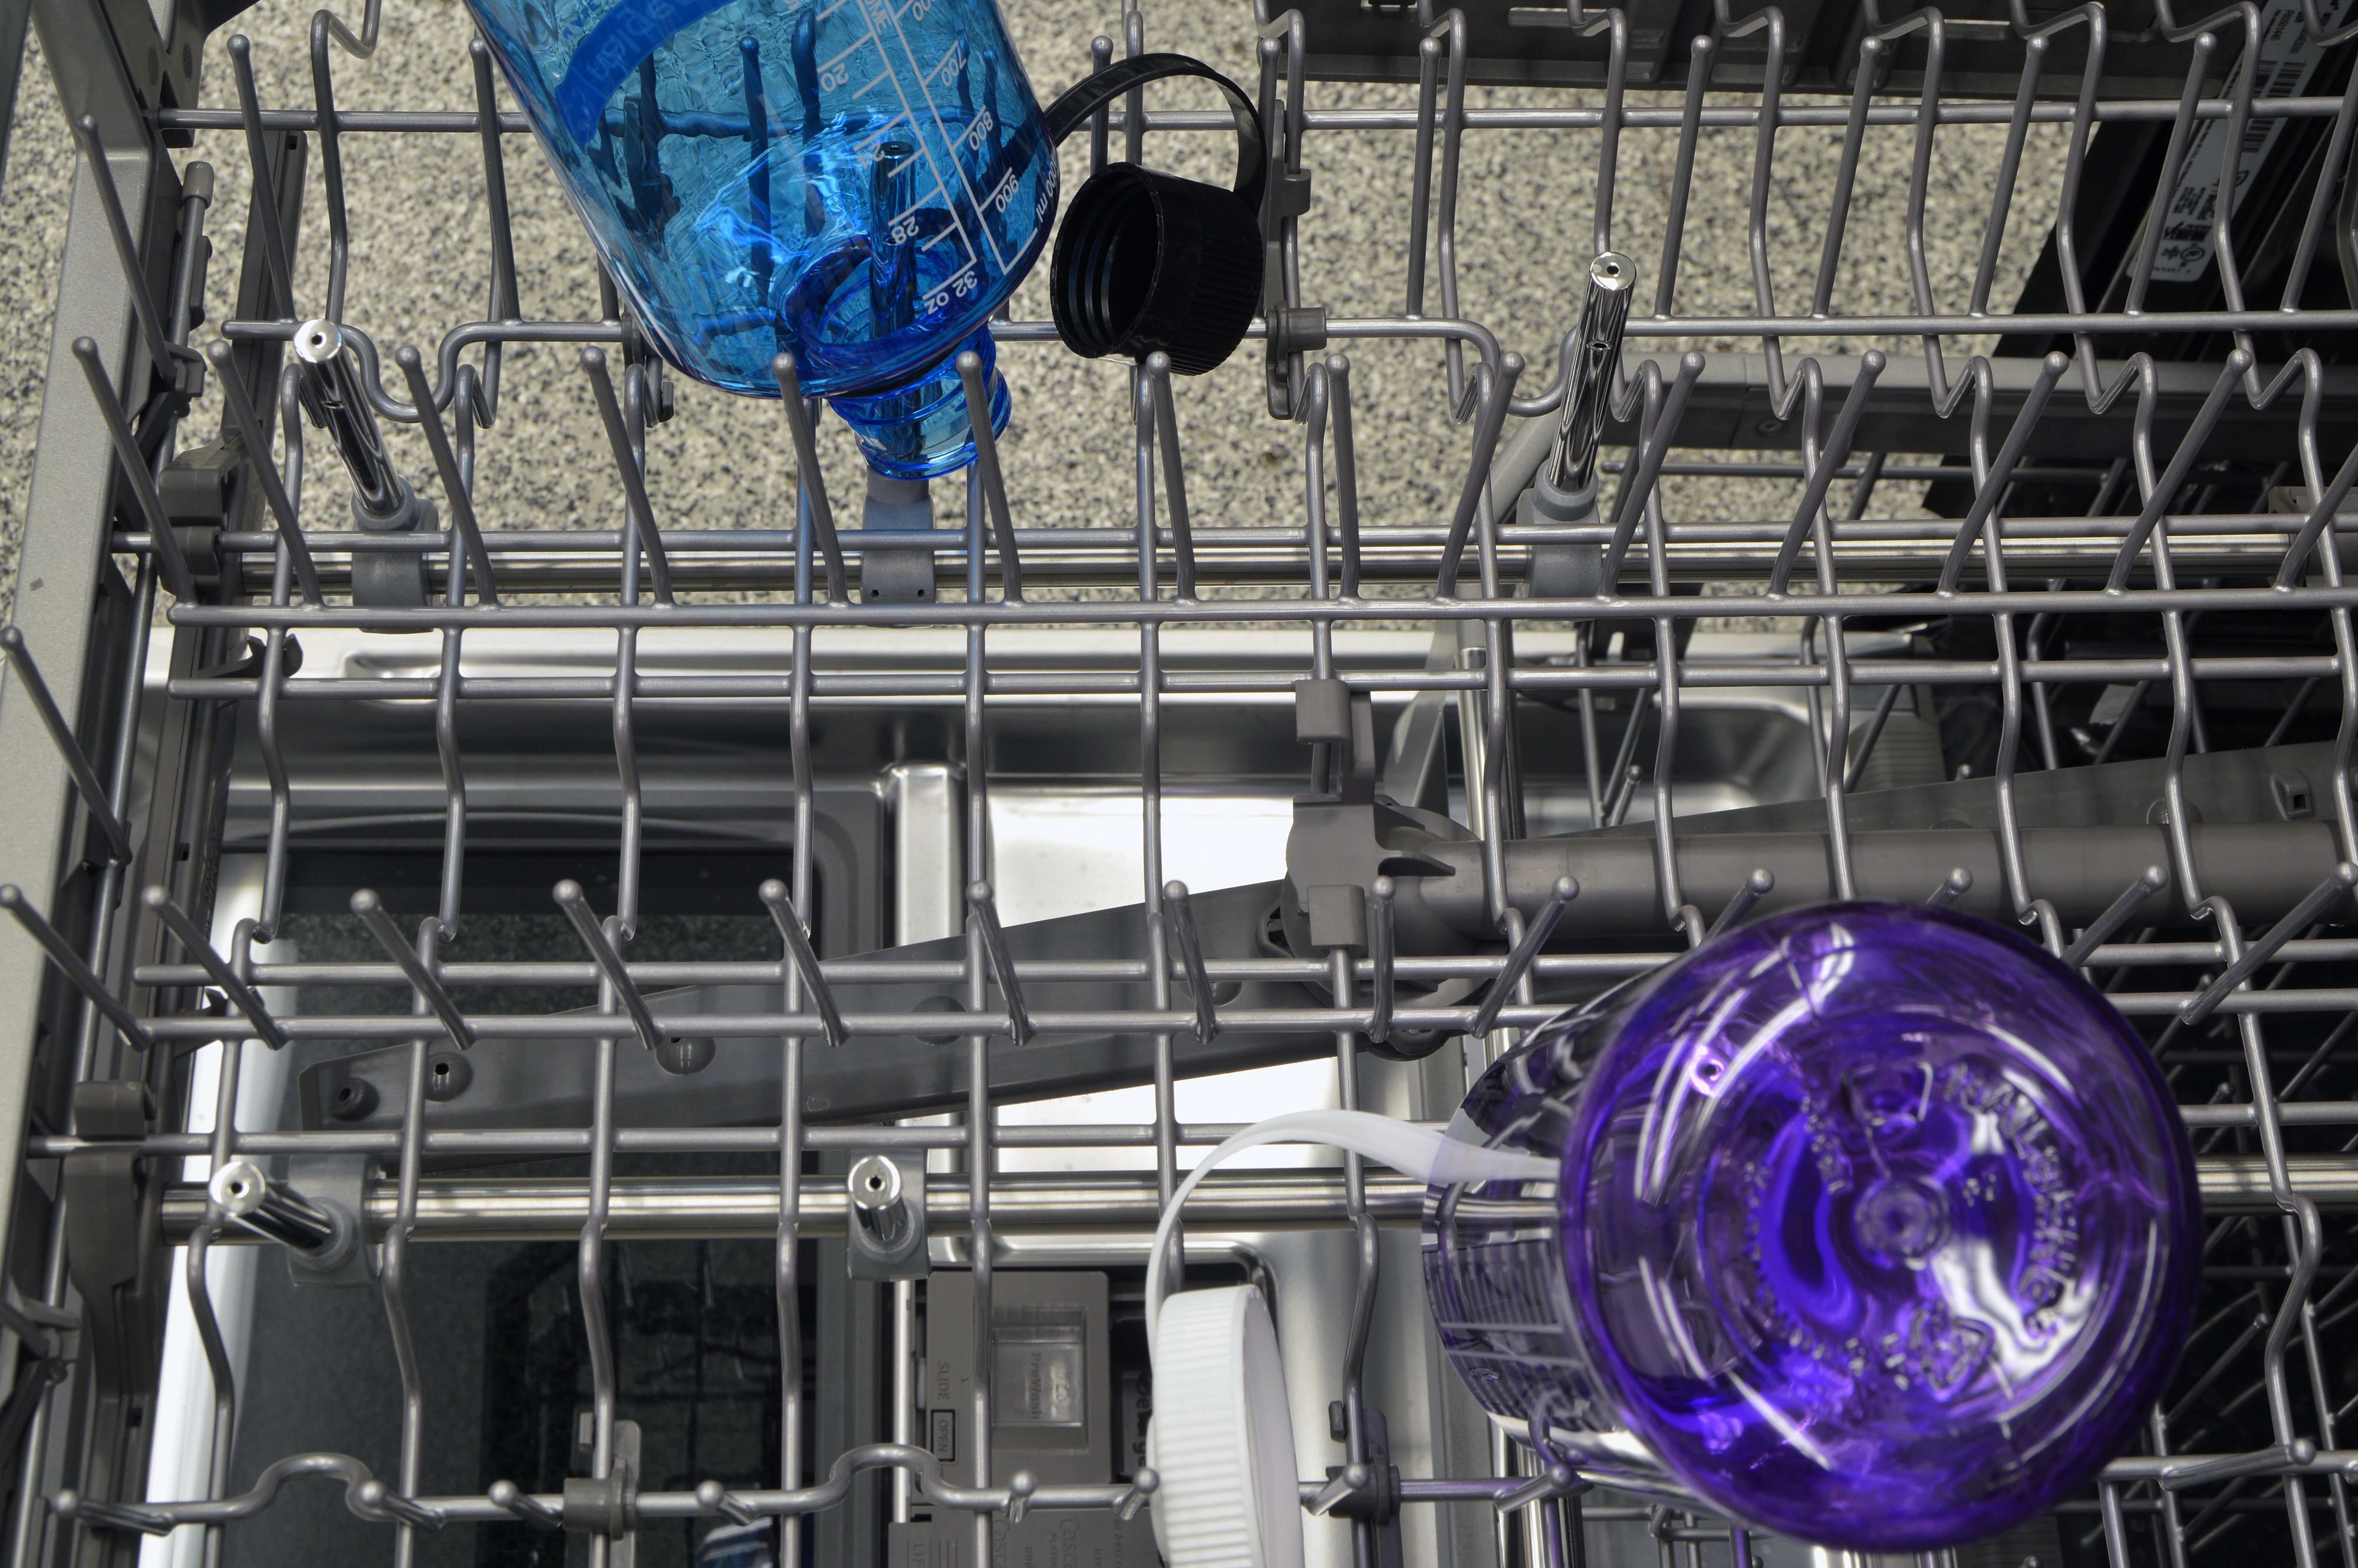 Specialized bottle washing jets found on the upper rack